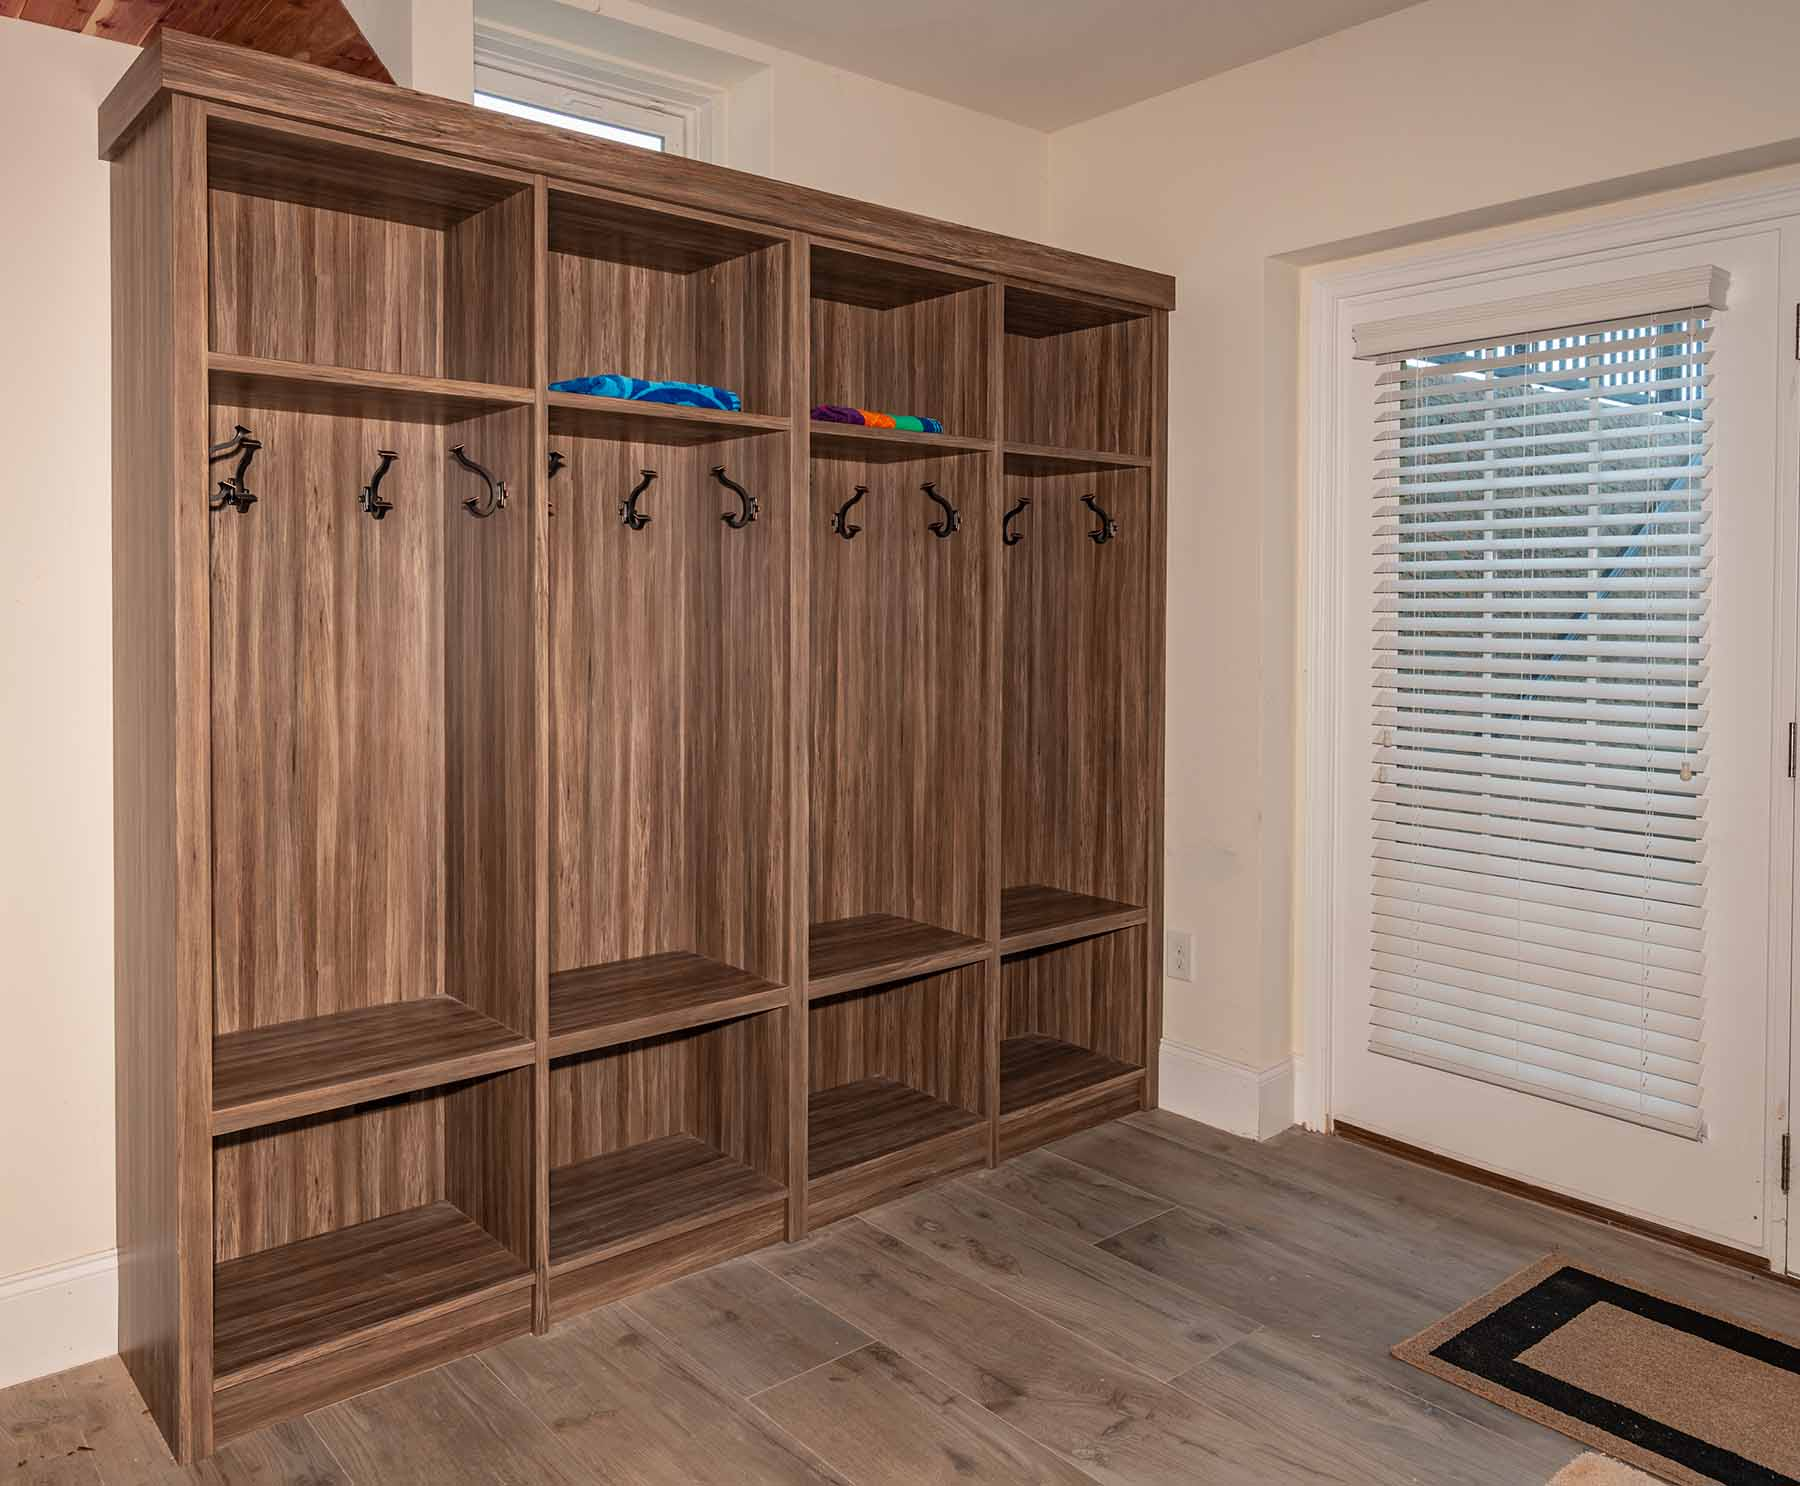 Orgnized mudroom with cubbies